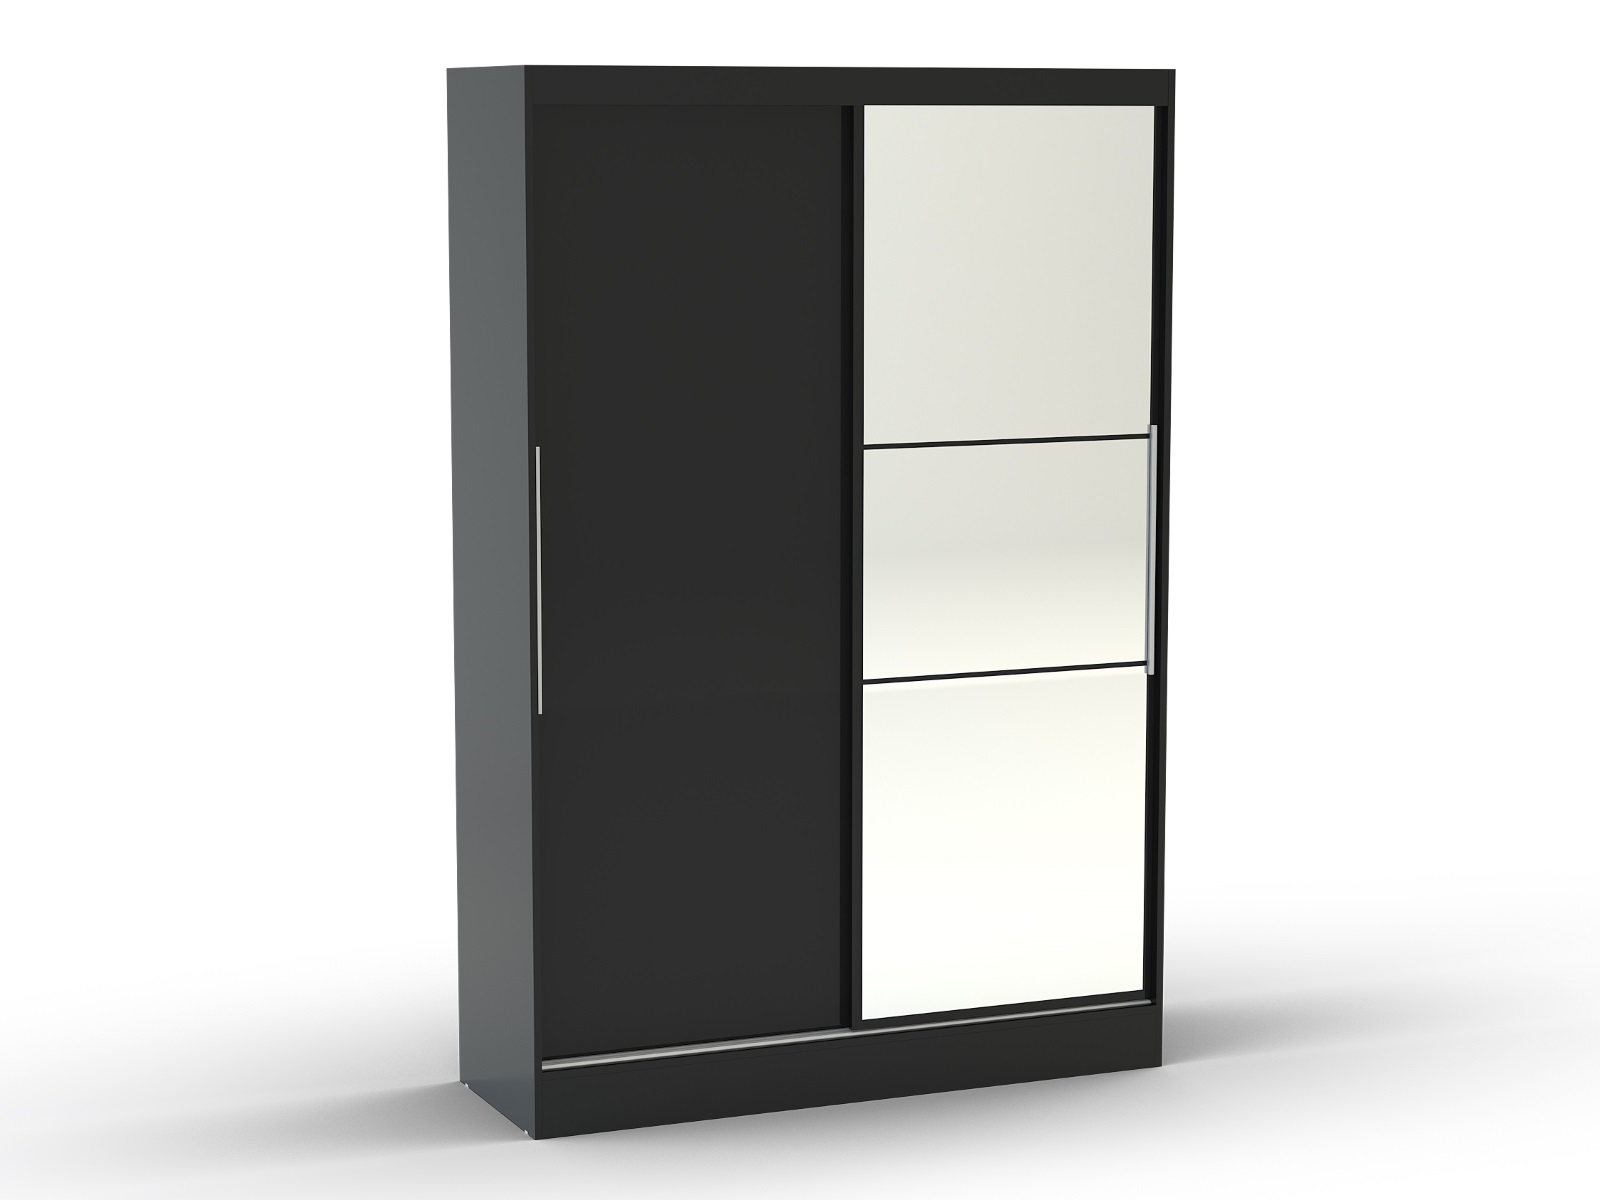 Rollover image of the black wardrobe to enlarge SZSSHQN